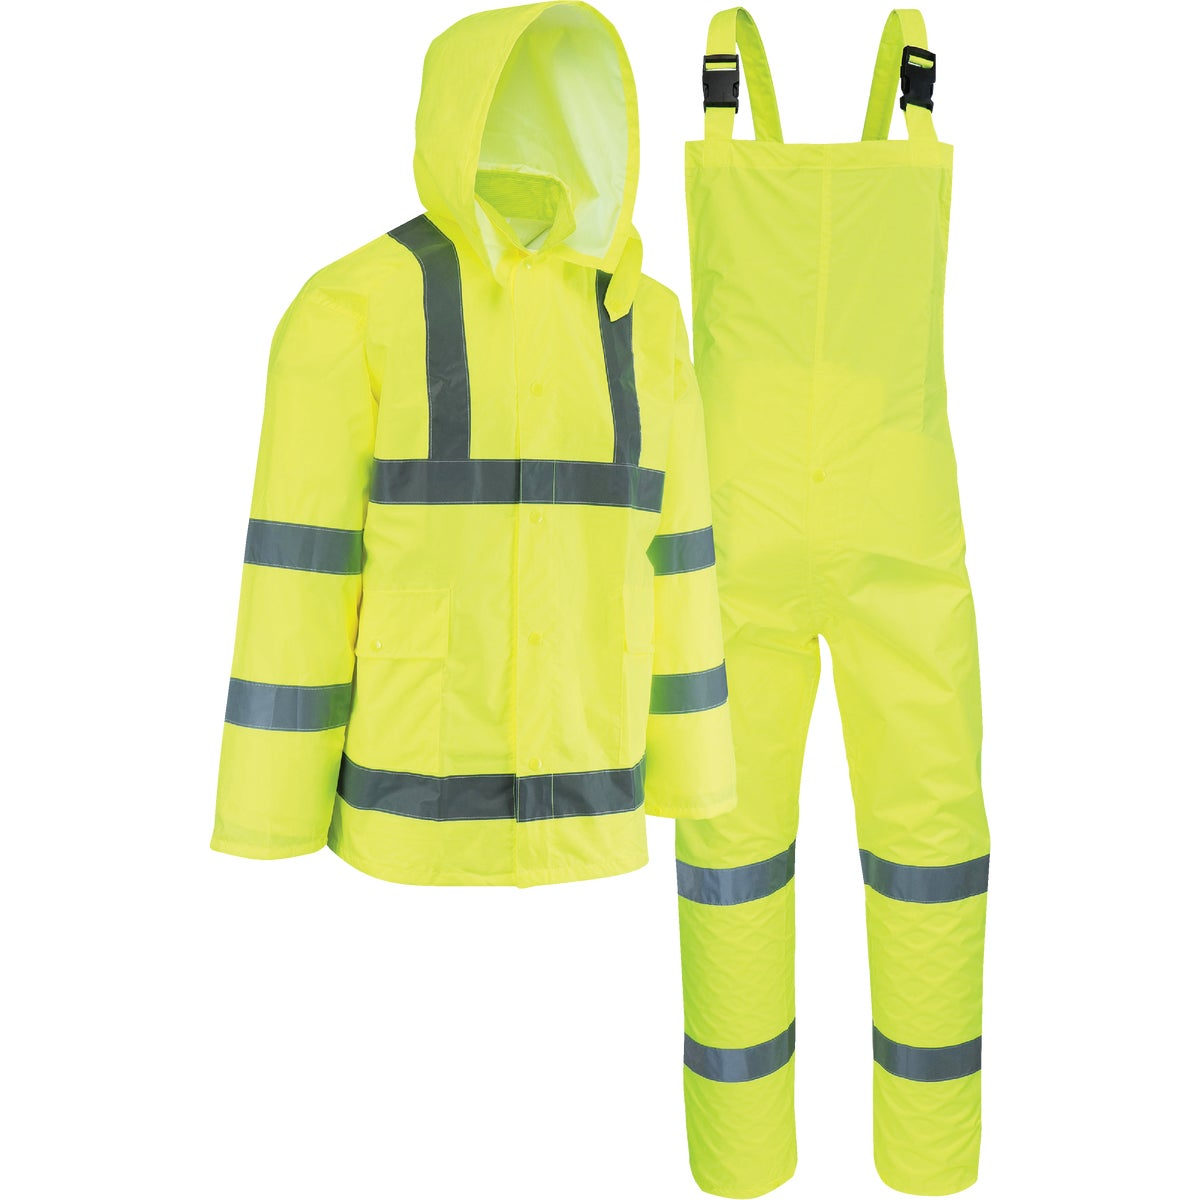 West Chester 3-Piece Hi Visibility Rain Suit, 44033/L